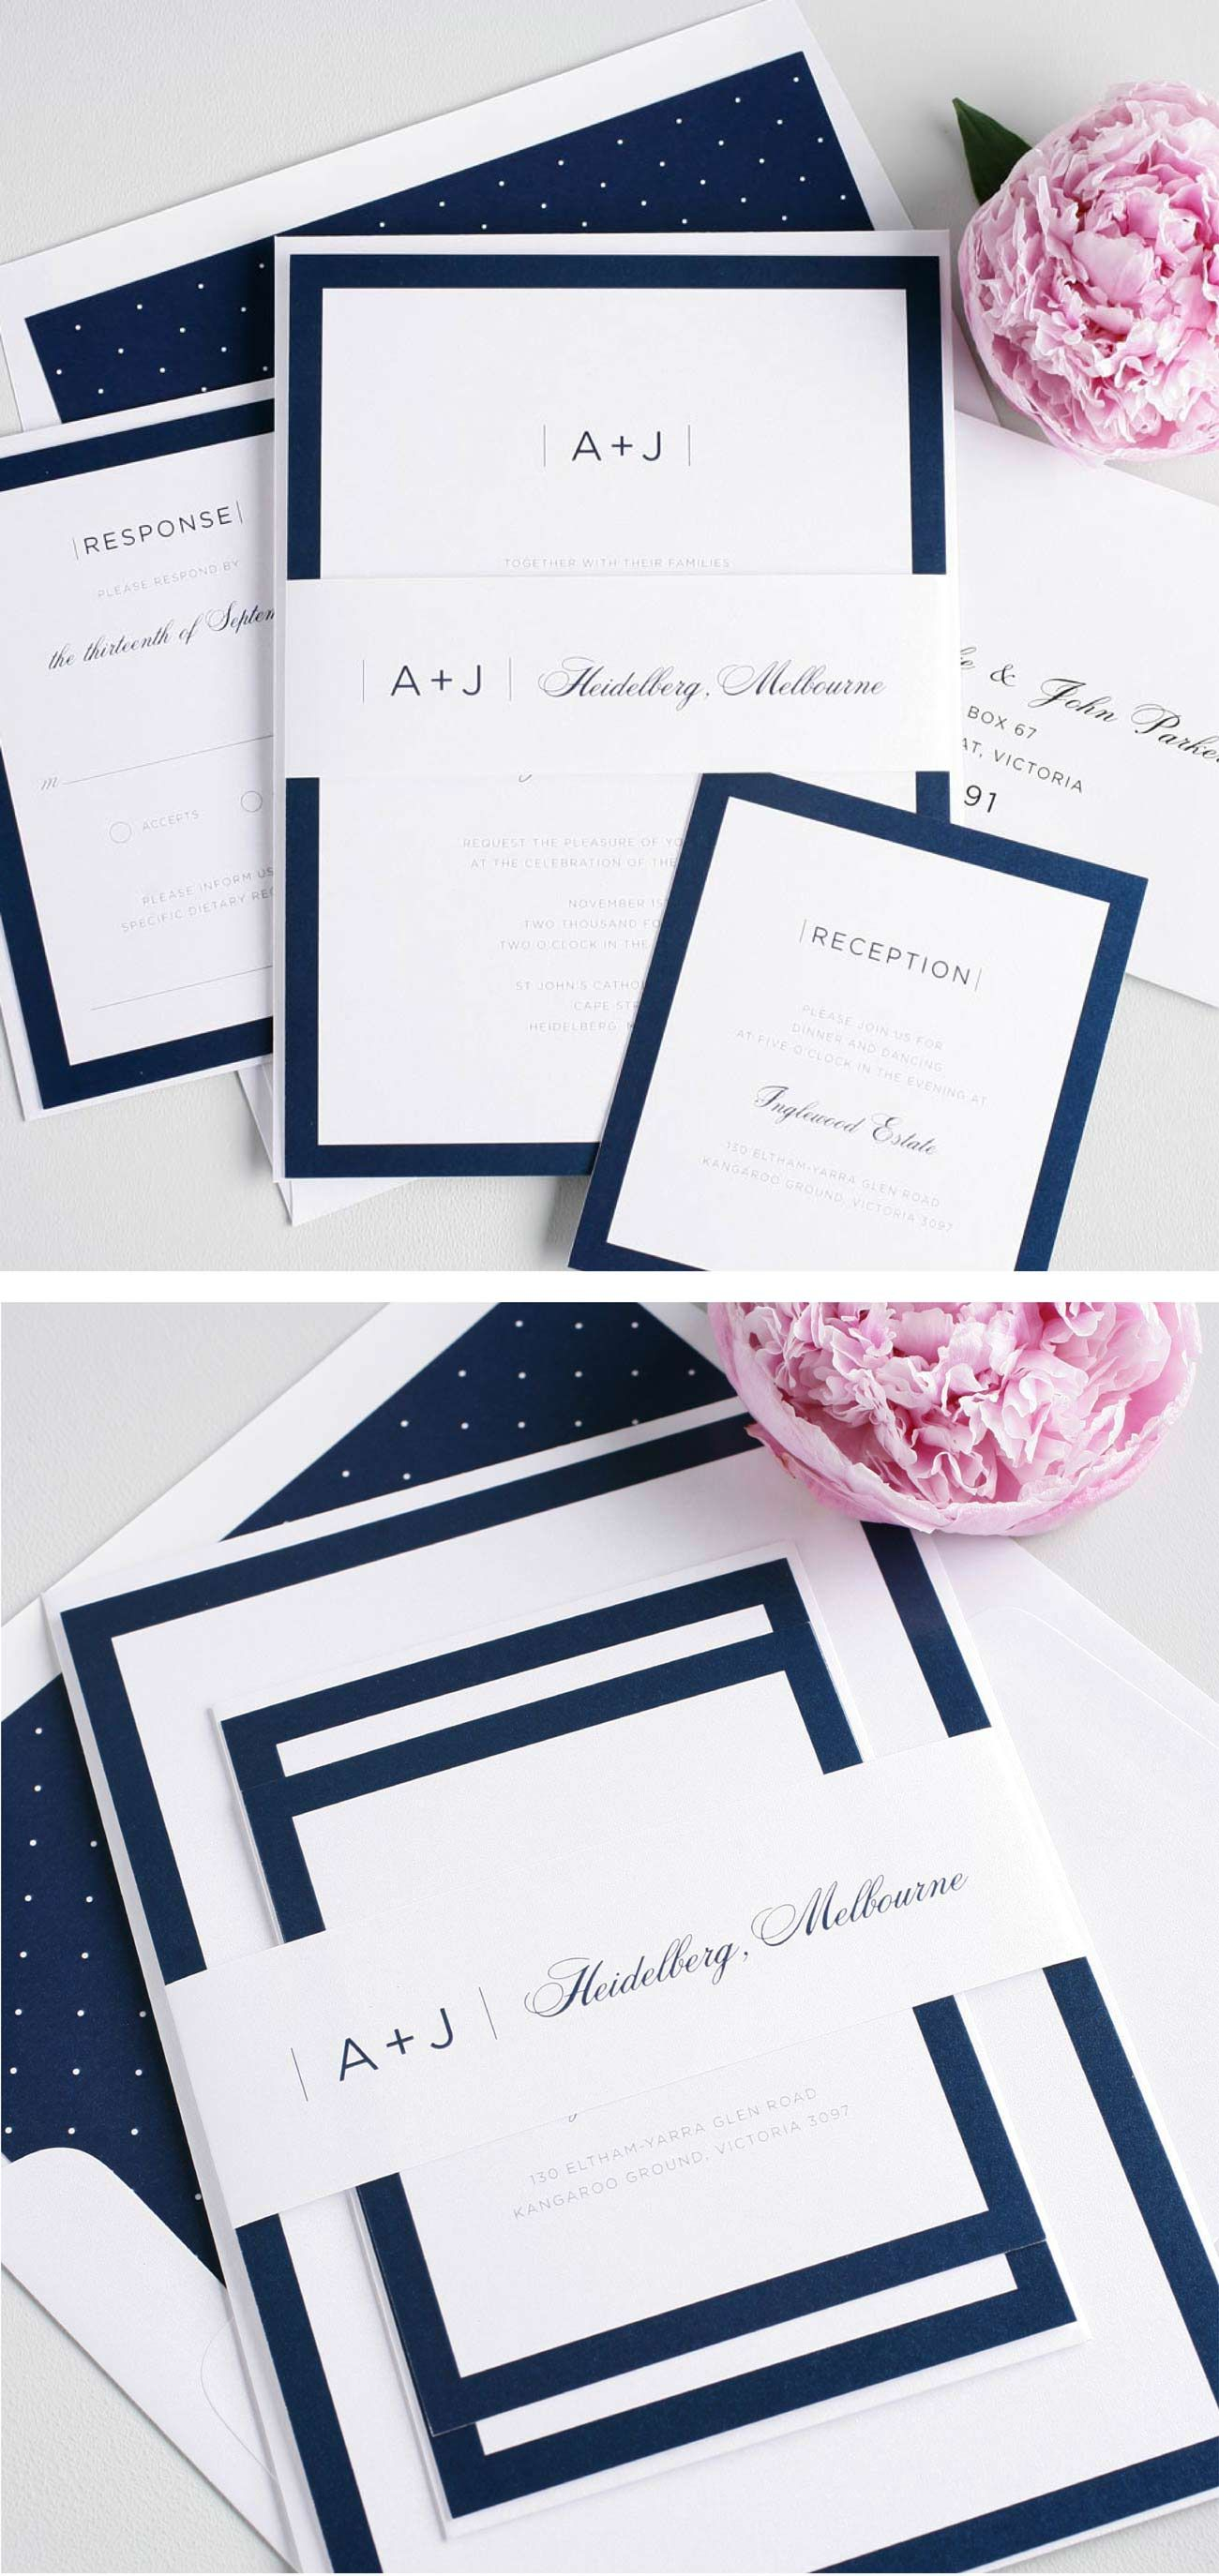 Sophisticated Modern Wedding Invitations | Weddings, Wedding and ...